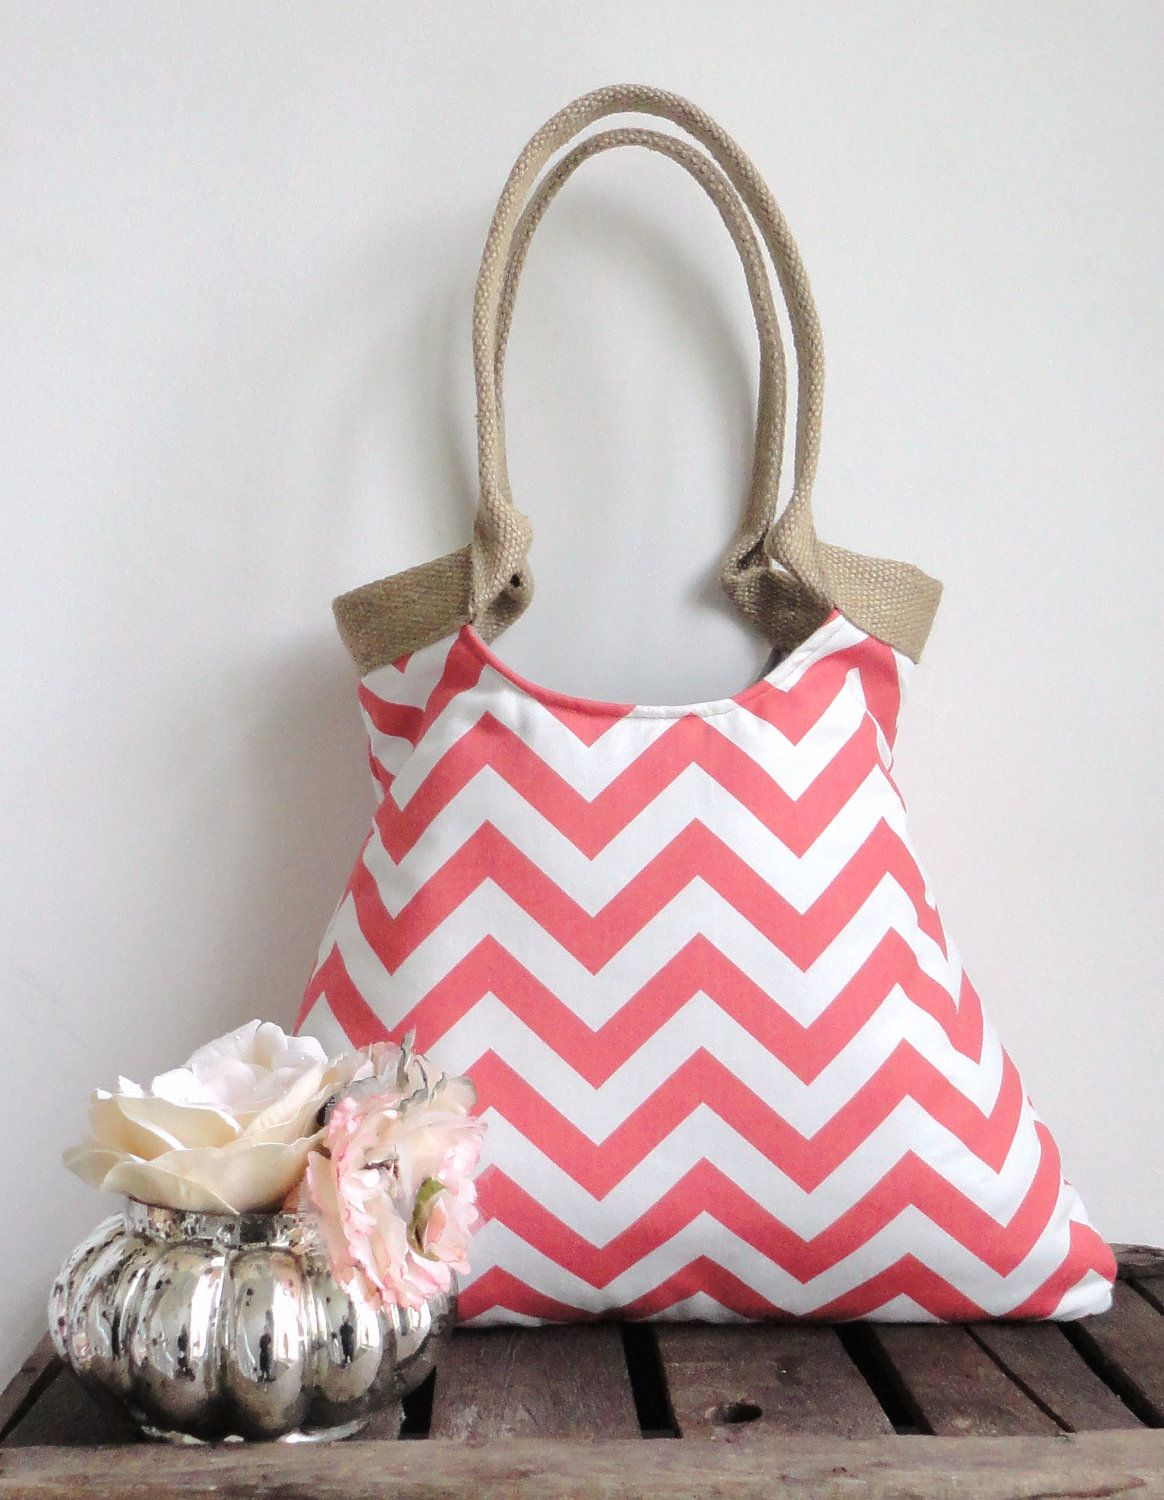 Coral chevron tote bag with jute by madebynanna on Etsy